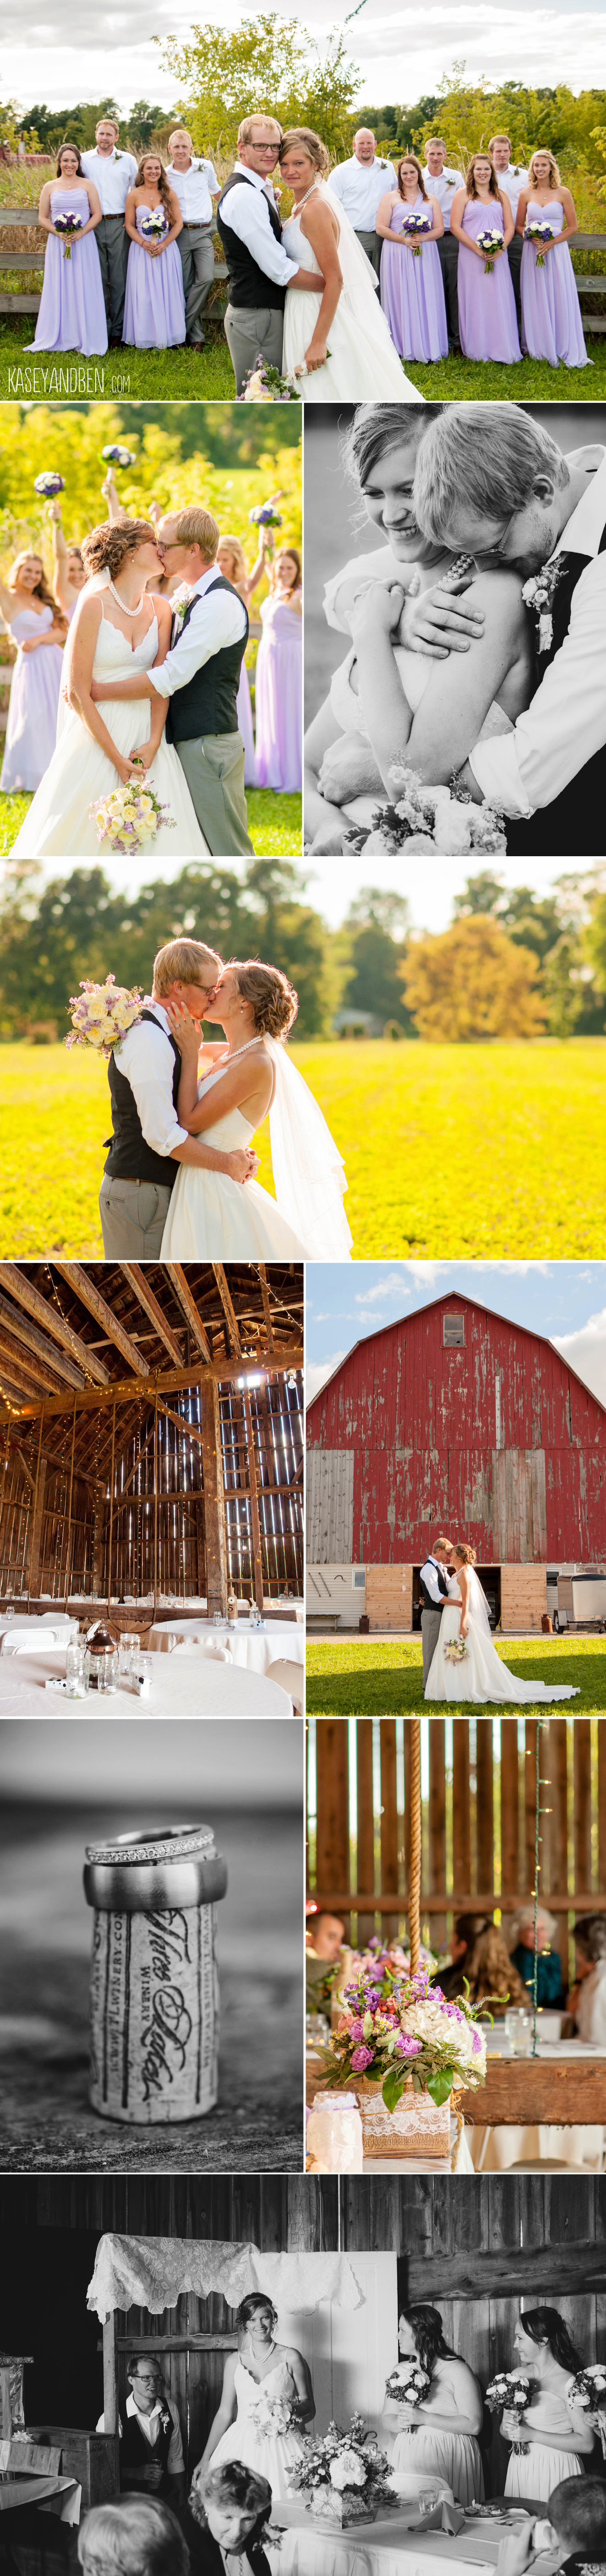 Wisconsin-Wedding-Waupaca-Barn-Farm-Photography-Bed-and-Breakfast-Apple-Tree-Lane-Photographers-Rustic-Country-Kasey-and-Ben-3